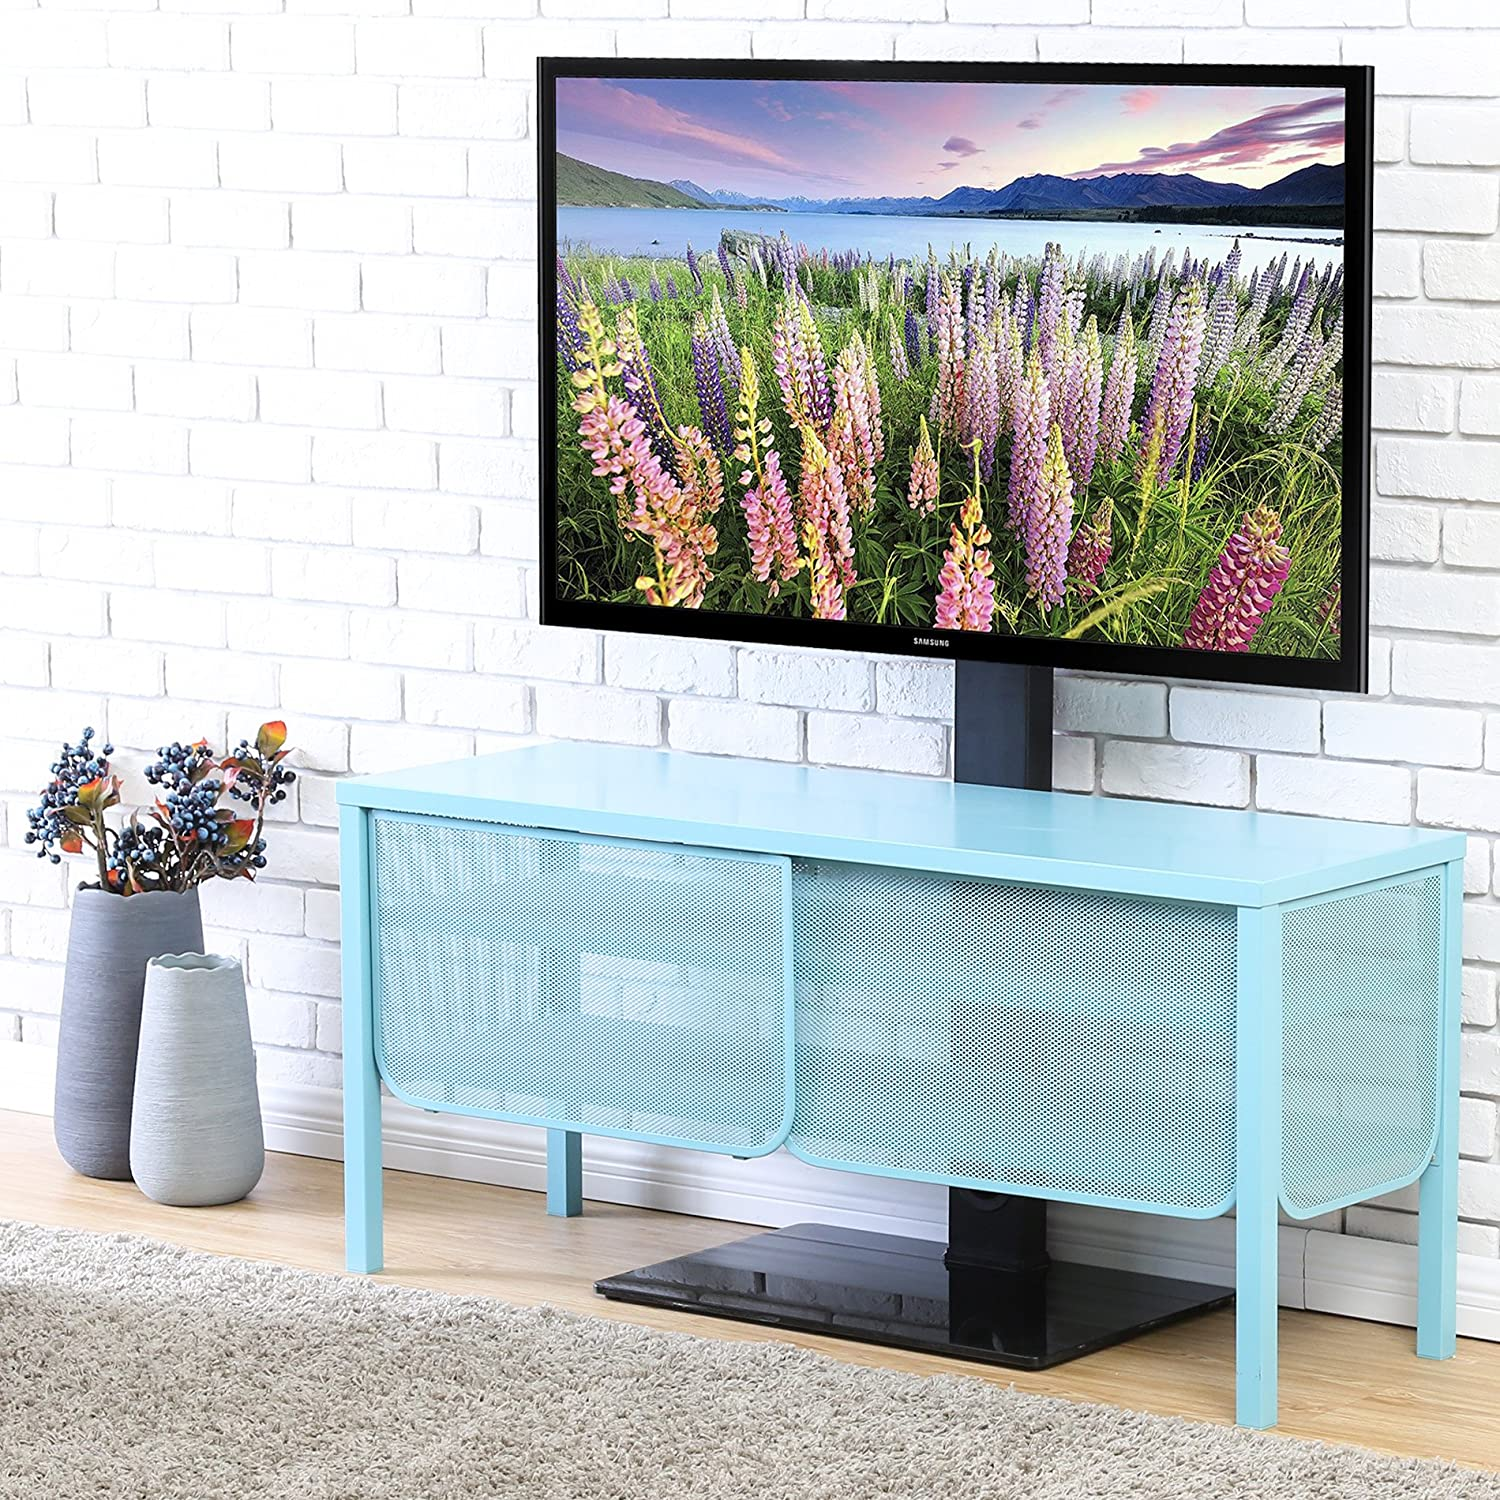 Amazon.com: FITUEYES Universal TV Stand Base With Swivel Mount ...